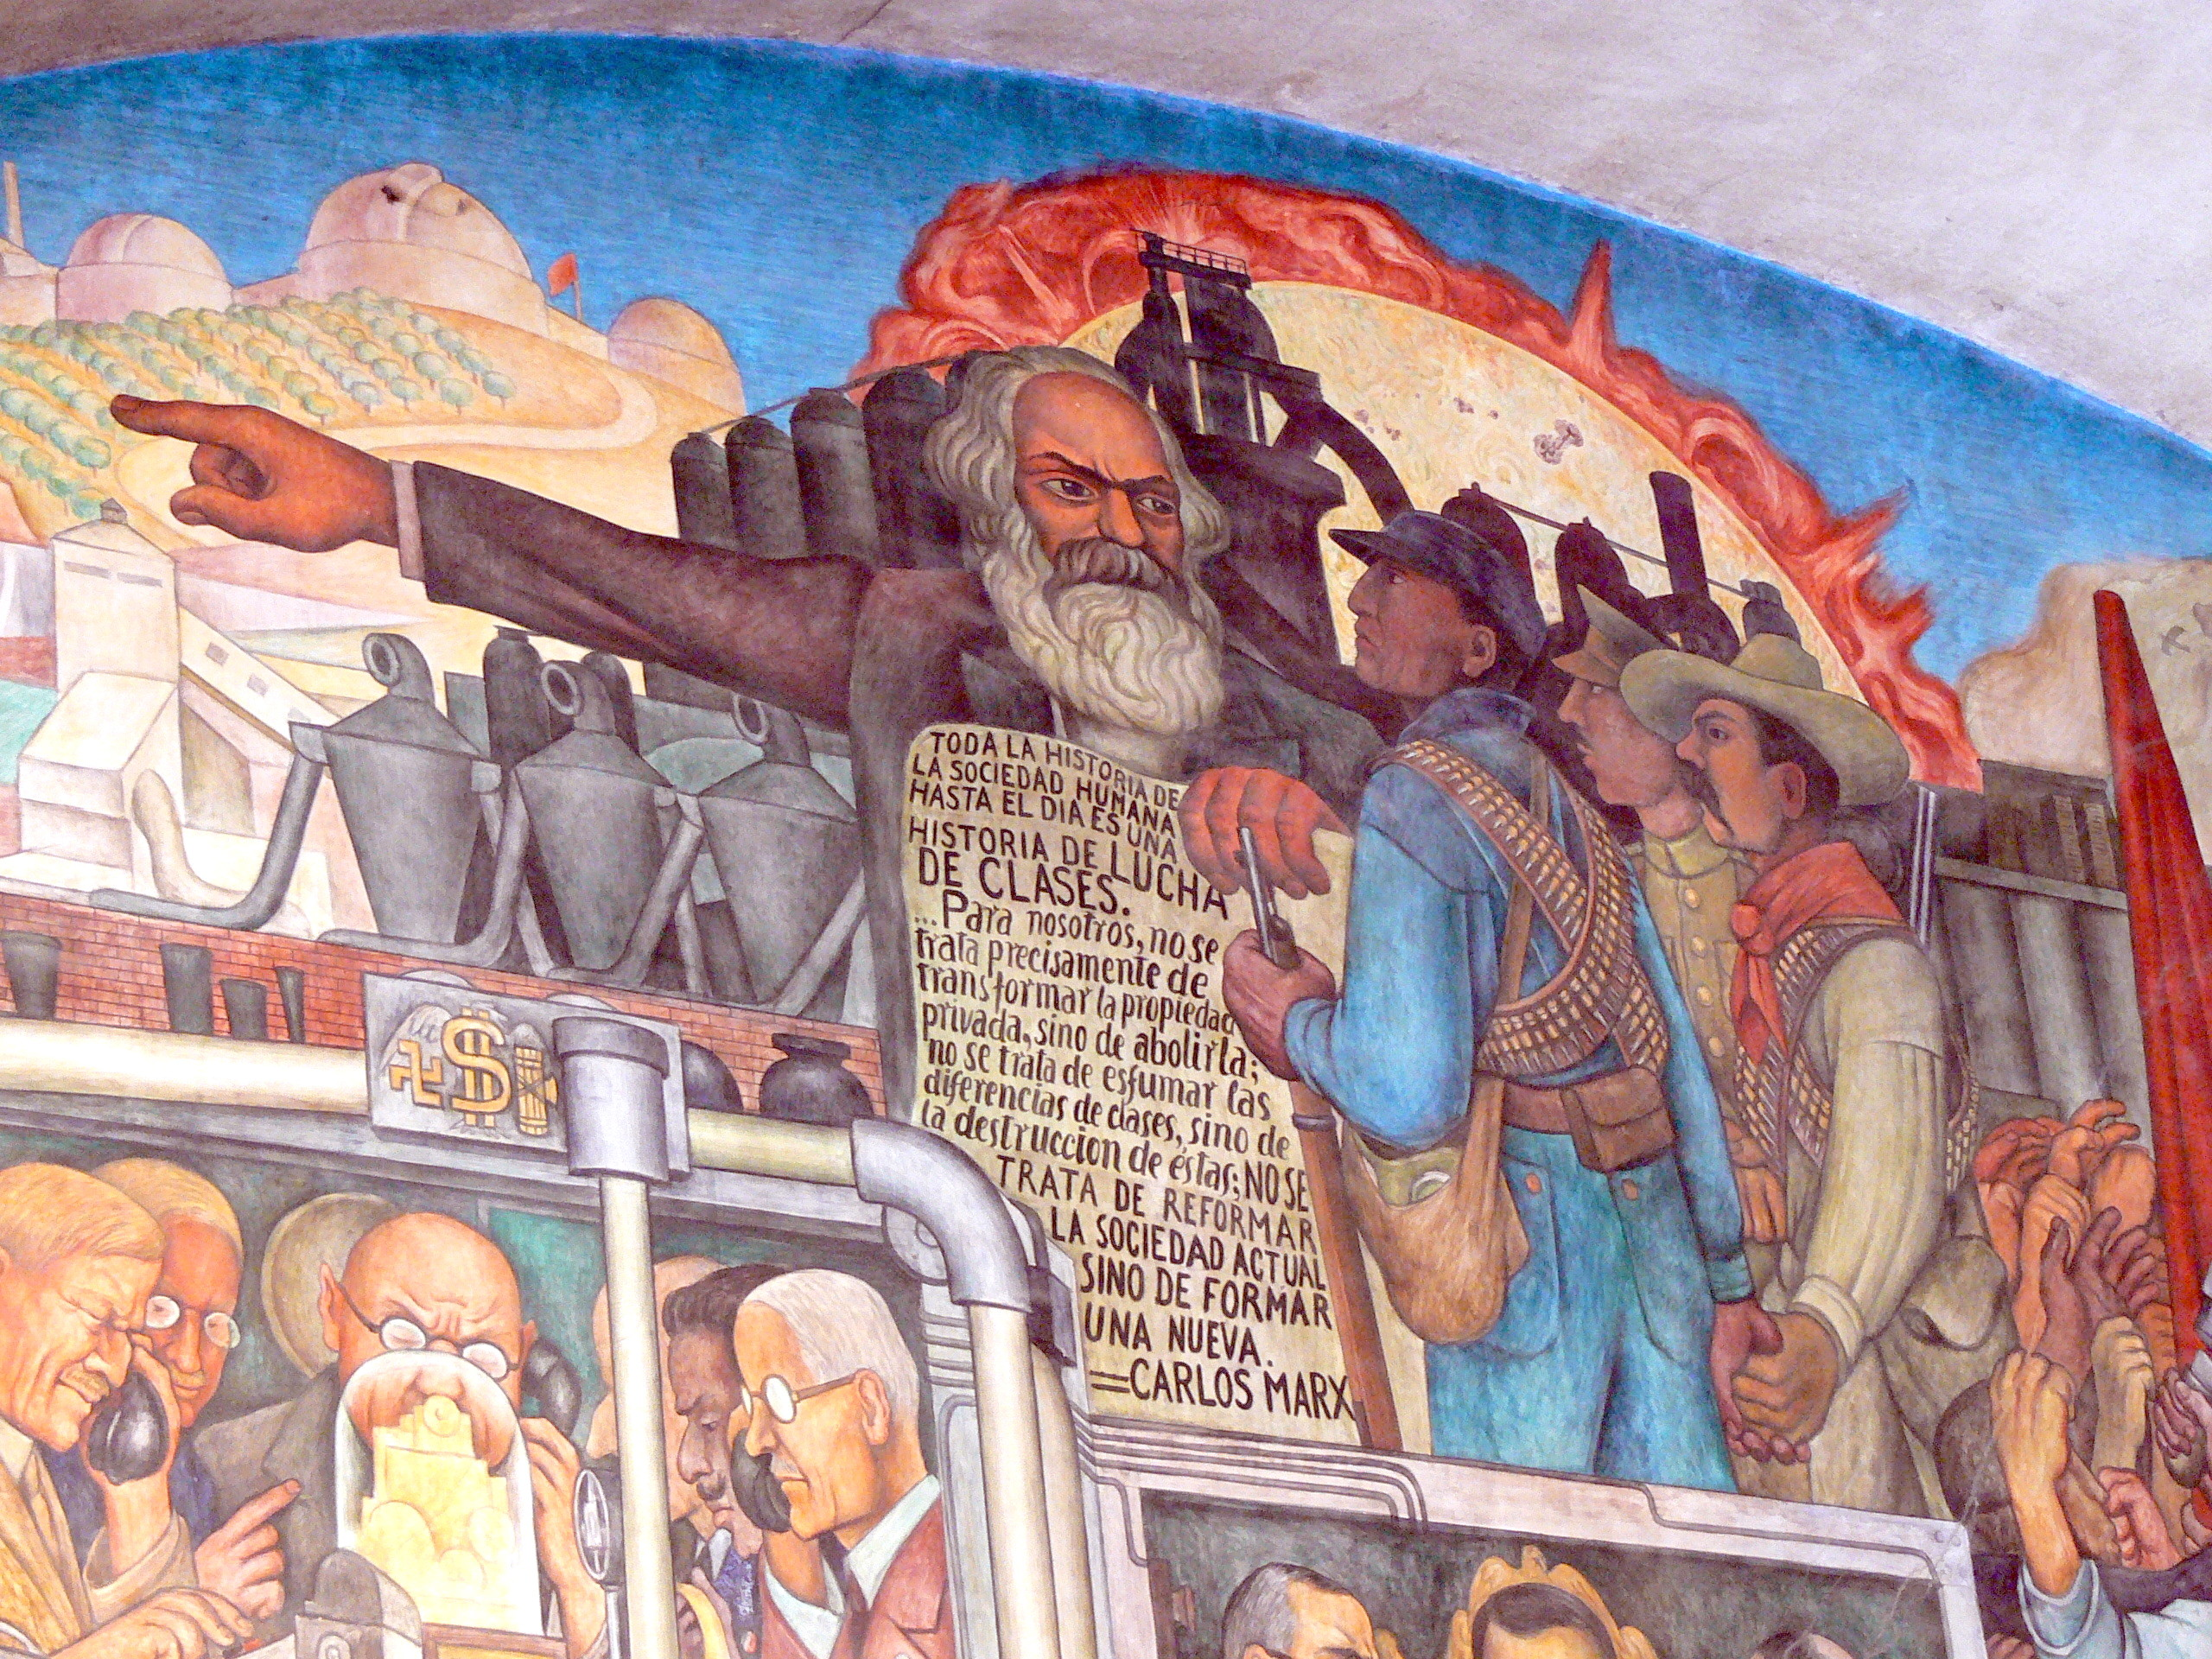 Uma est ria do m xico segundo diego rivera for Diego rivera lenin mural